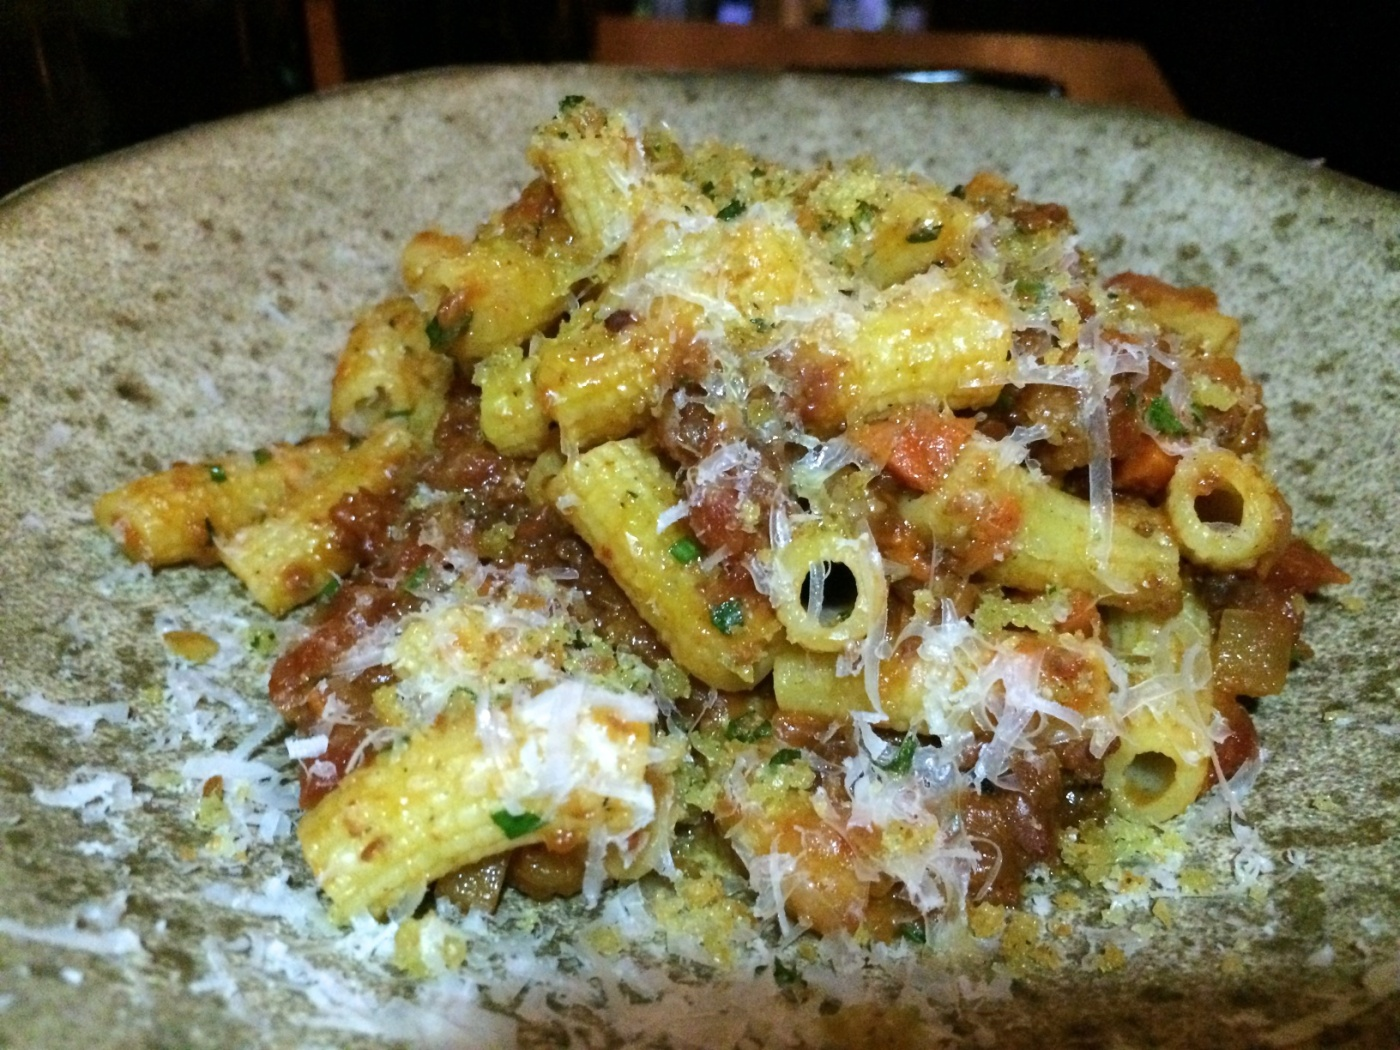 Black Peppercorn Rigatoni-spiced lamb ragout, caciocavallo, bread crumb ($17)